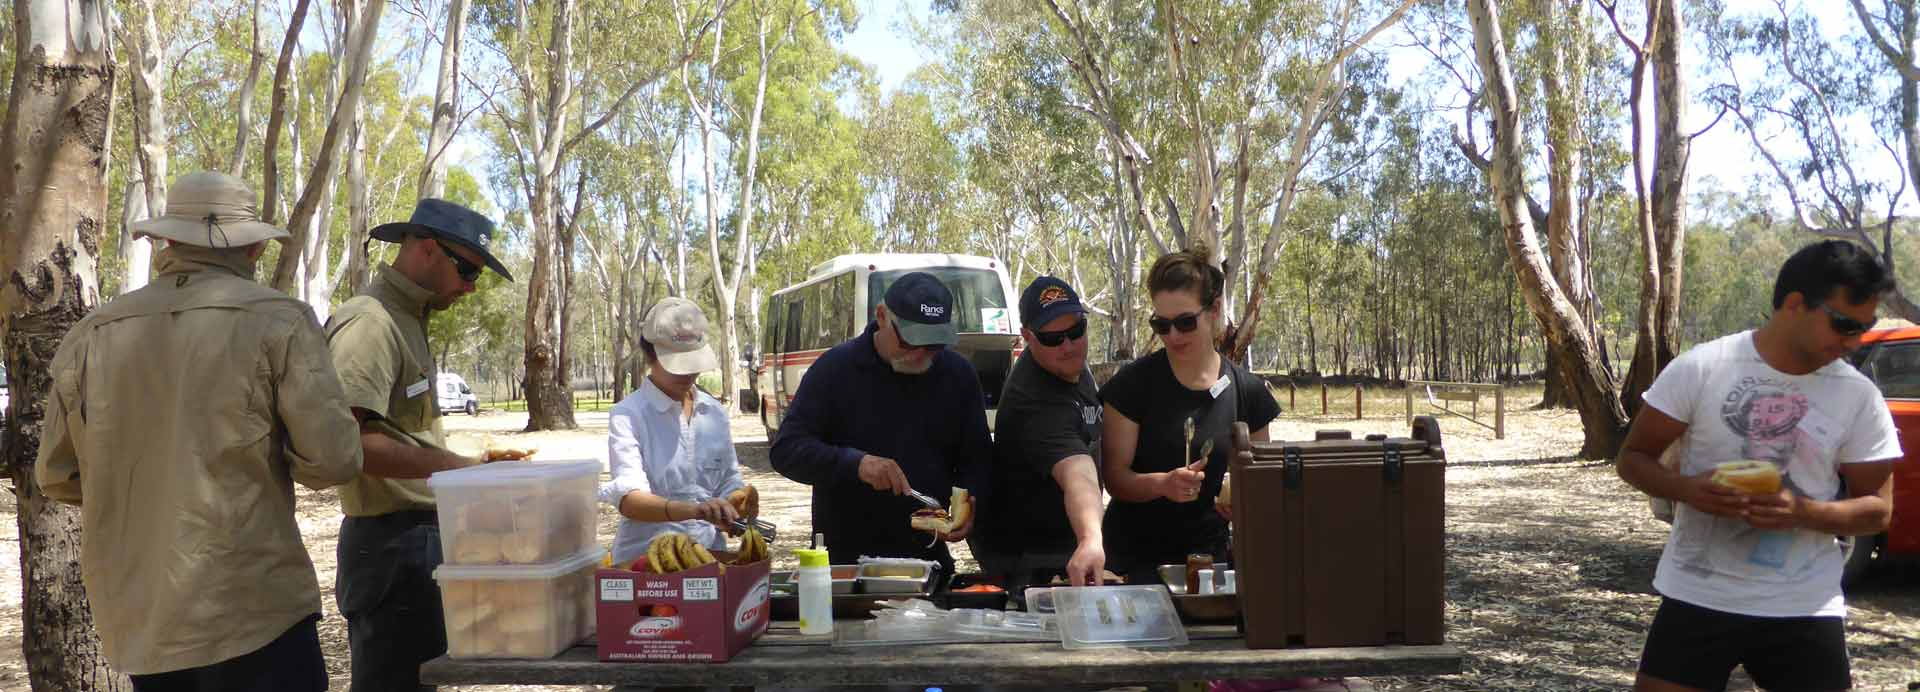 people having lunch at the flood plain ecology course